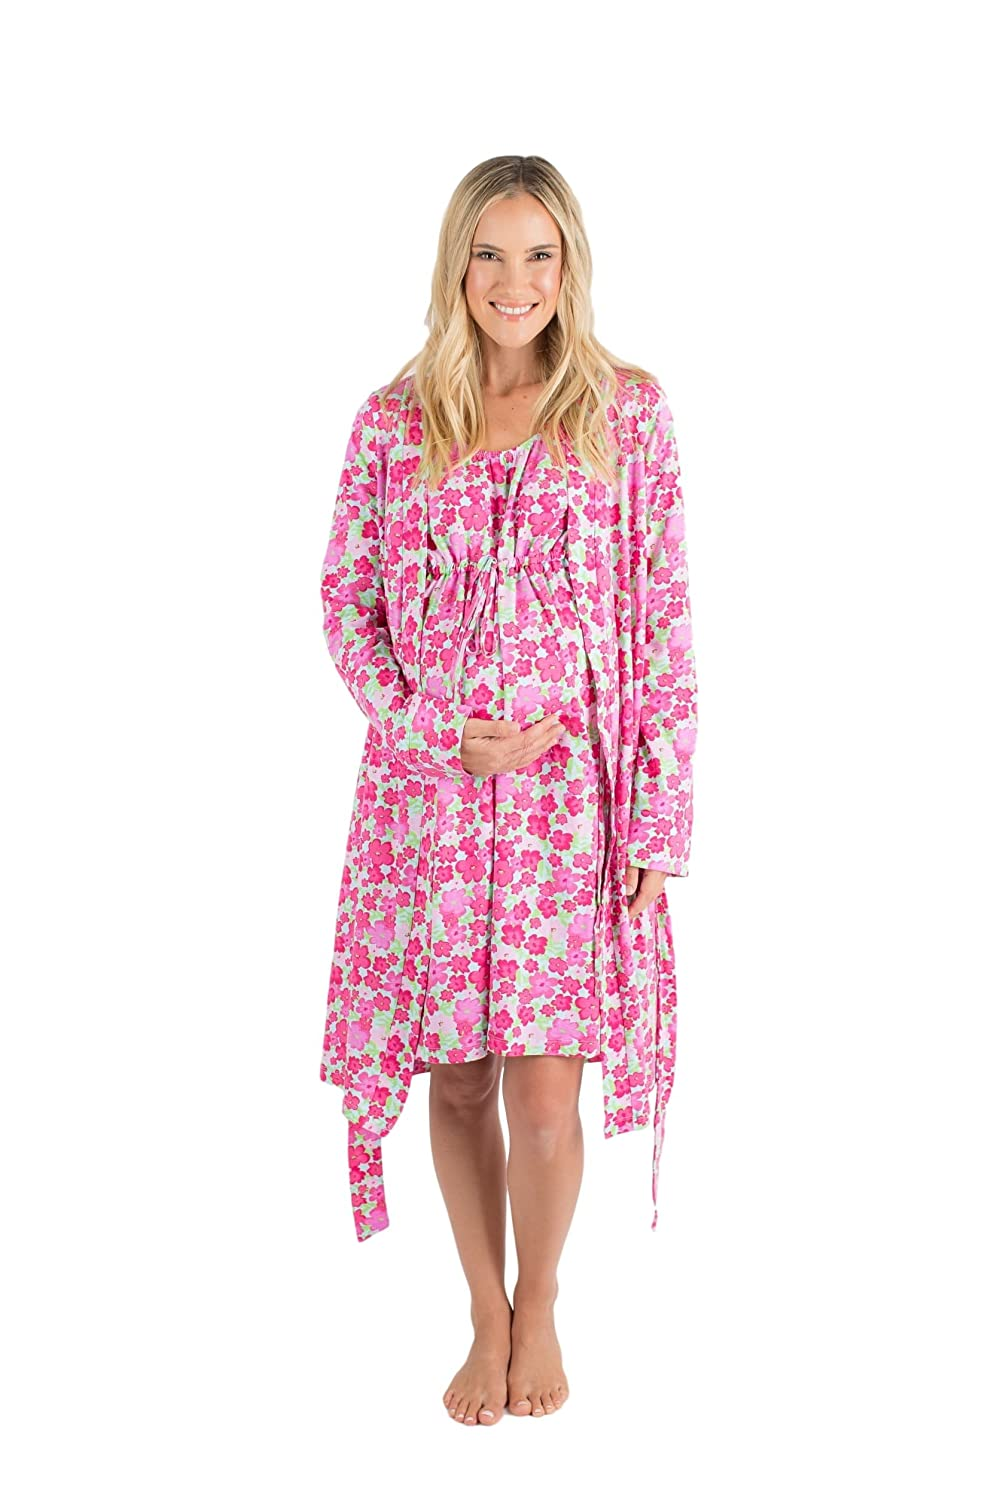 12f01c9f12 3 in 1 Maternity Labor Delivery Nursing Hospital Birthing Gown   Matching  Robe